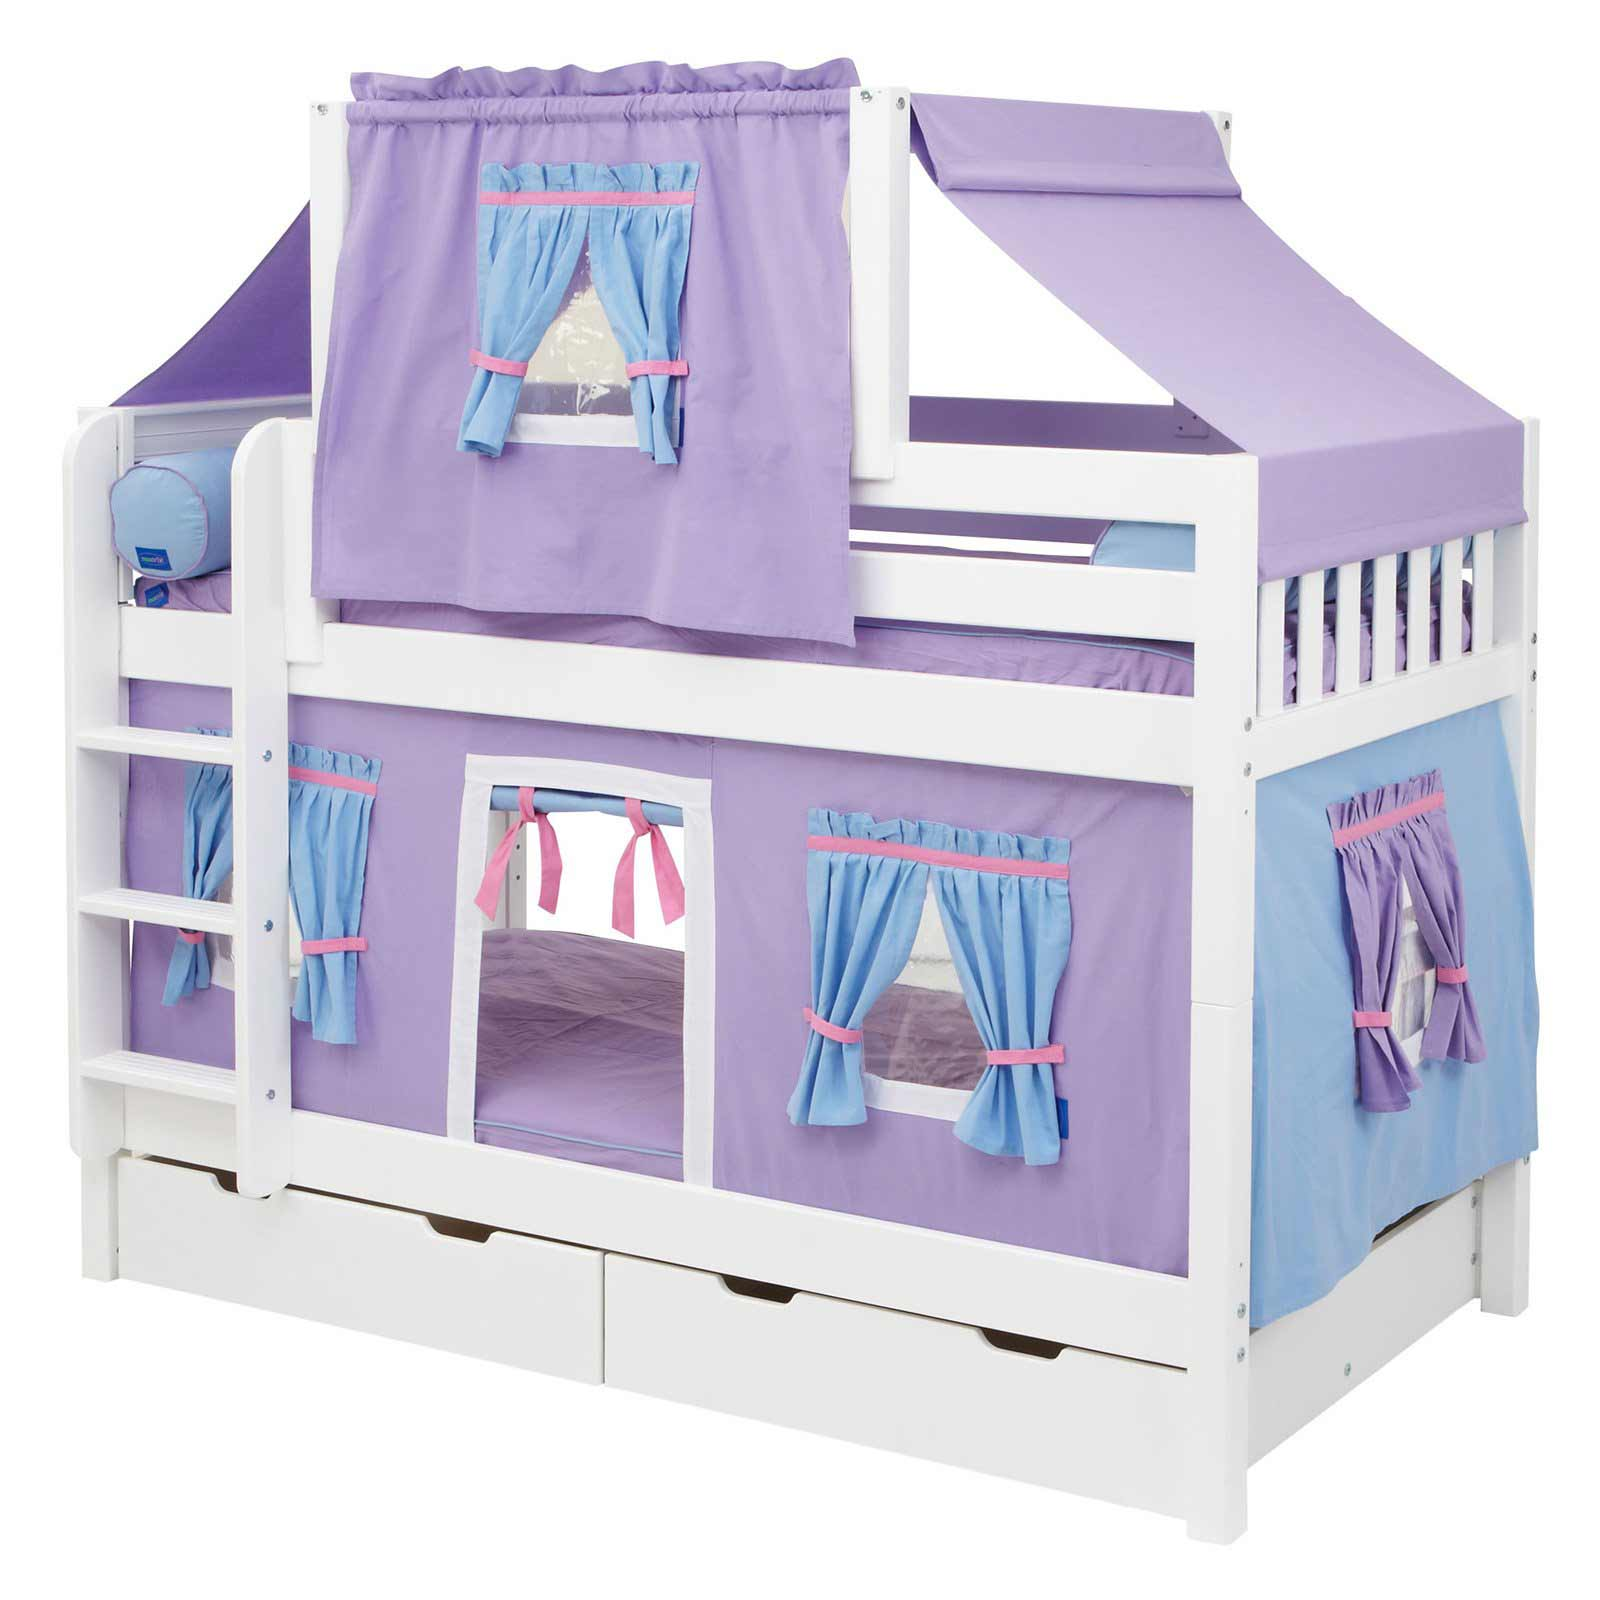 10 Awesome Girls Bunk Beds